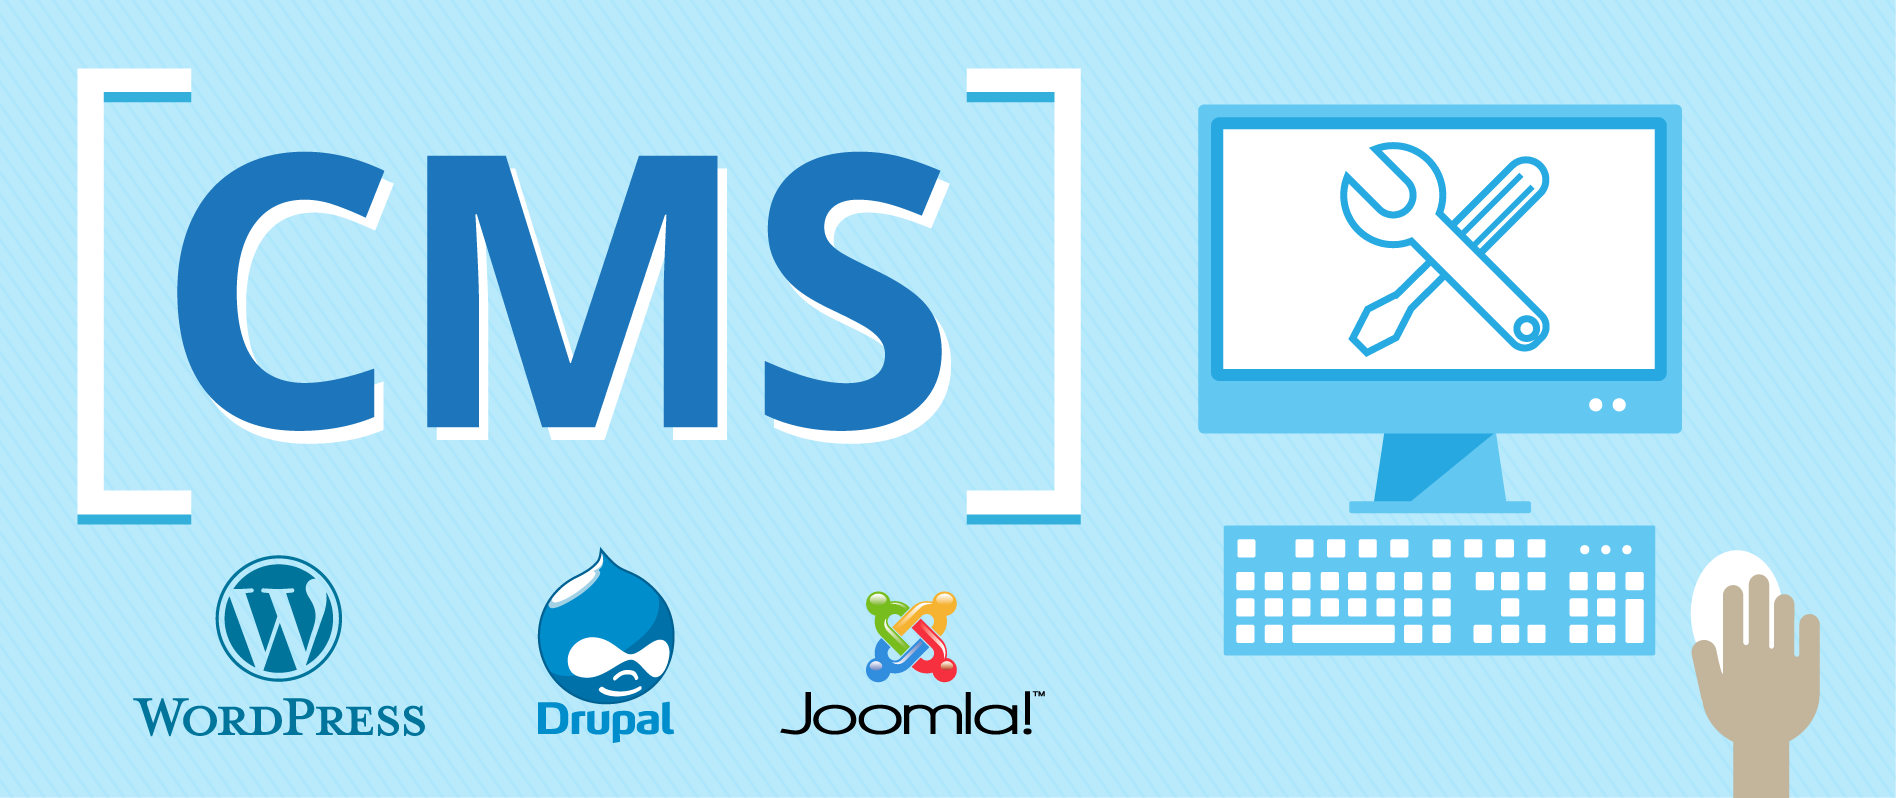 What We Can Learn From The Evolution Of Cms